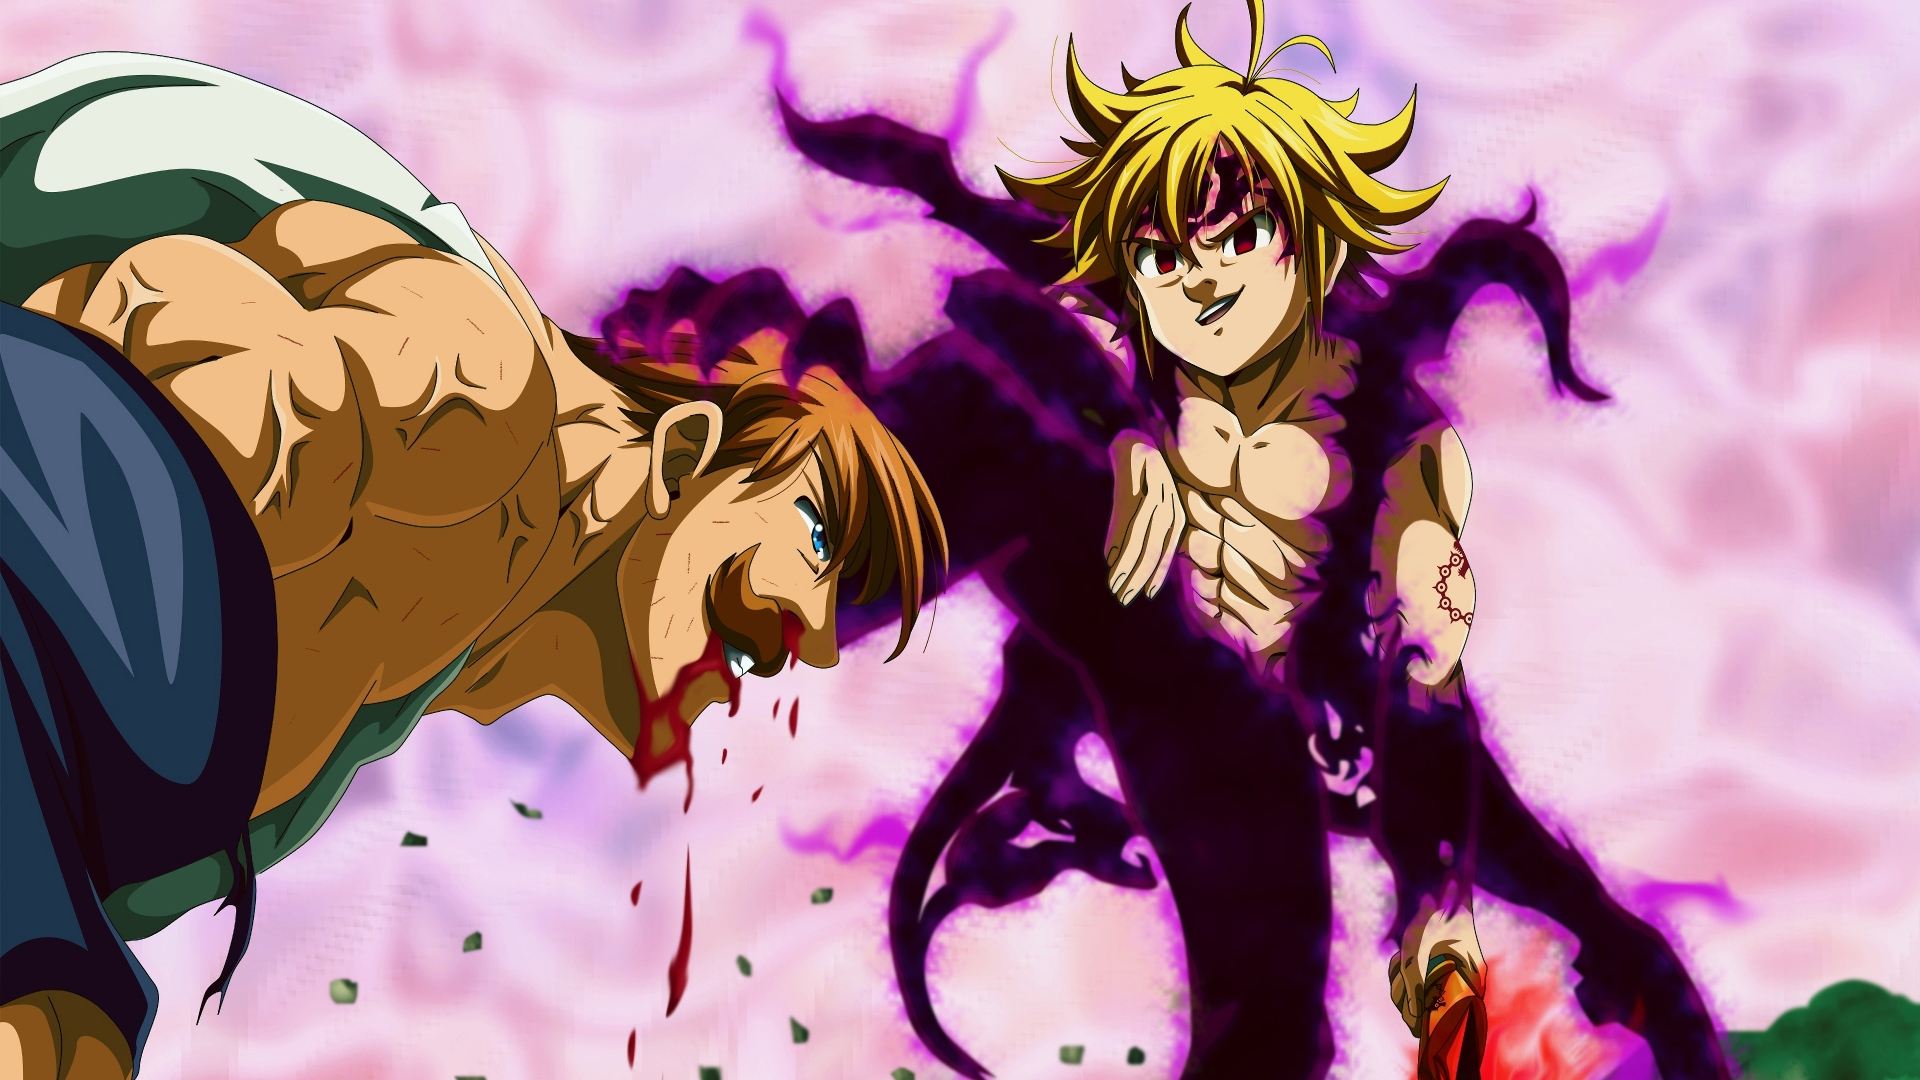 Scene From Seven Deadly Sins Anime Wallpaper 4k Ultra Hd Id 4021